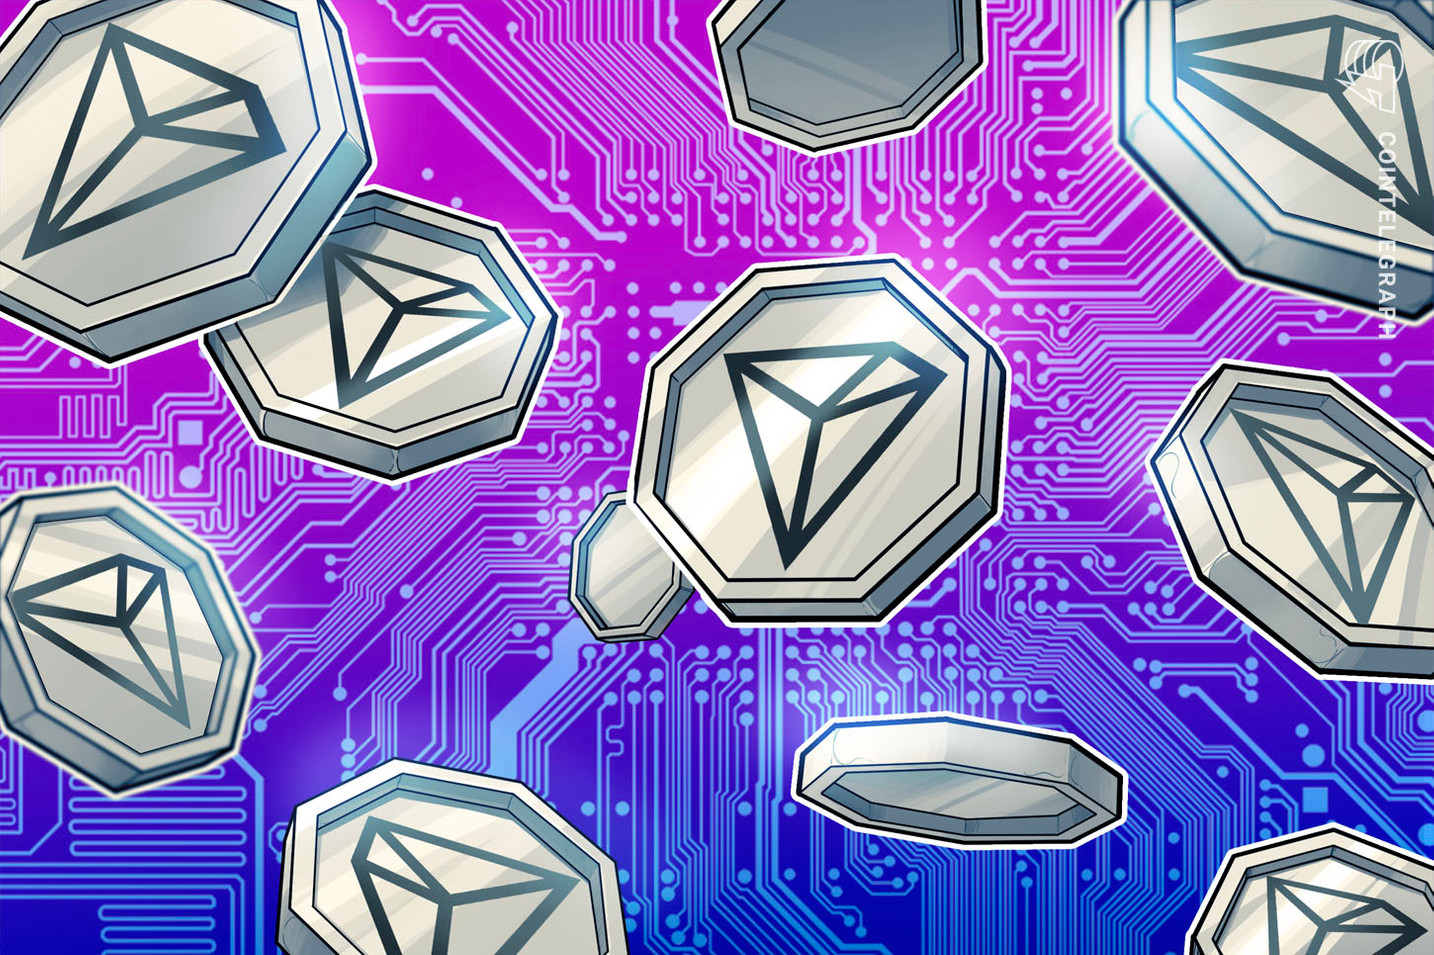 Tron legitimized a project that pulled an exit scam, community says